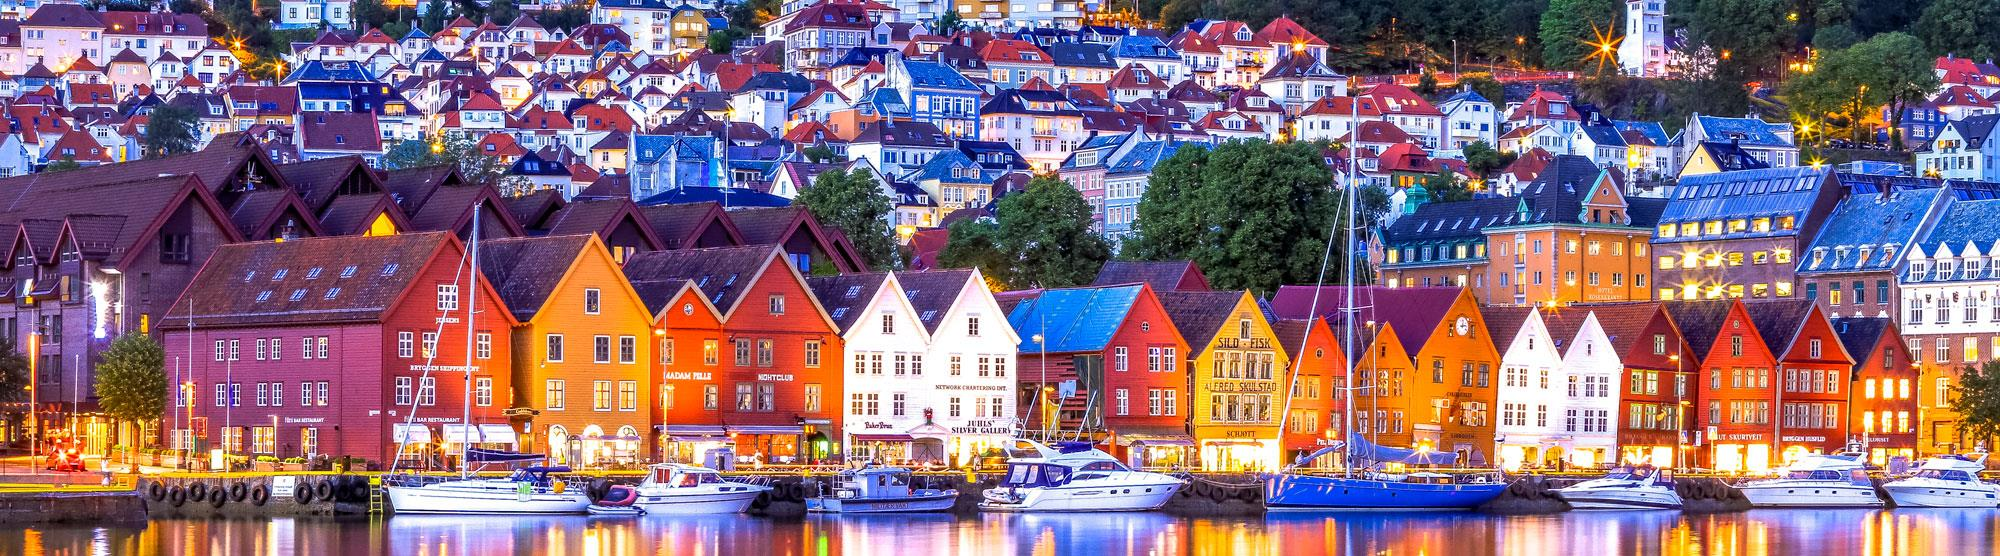 Several hotels available in historic surroundings on Bryggen in Bergen.